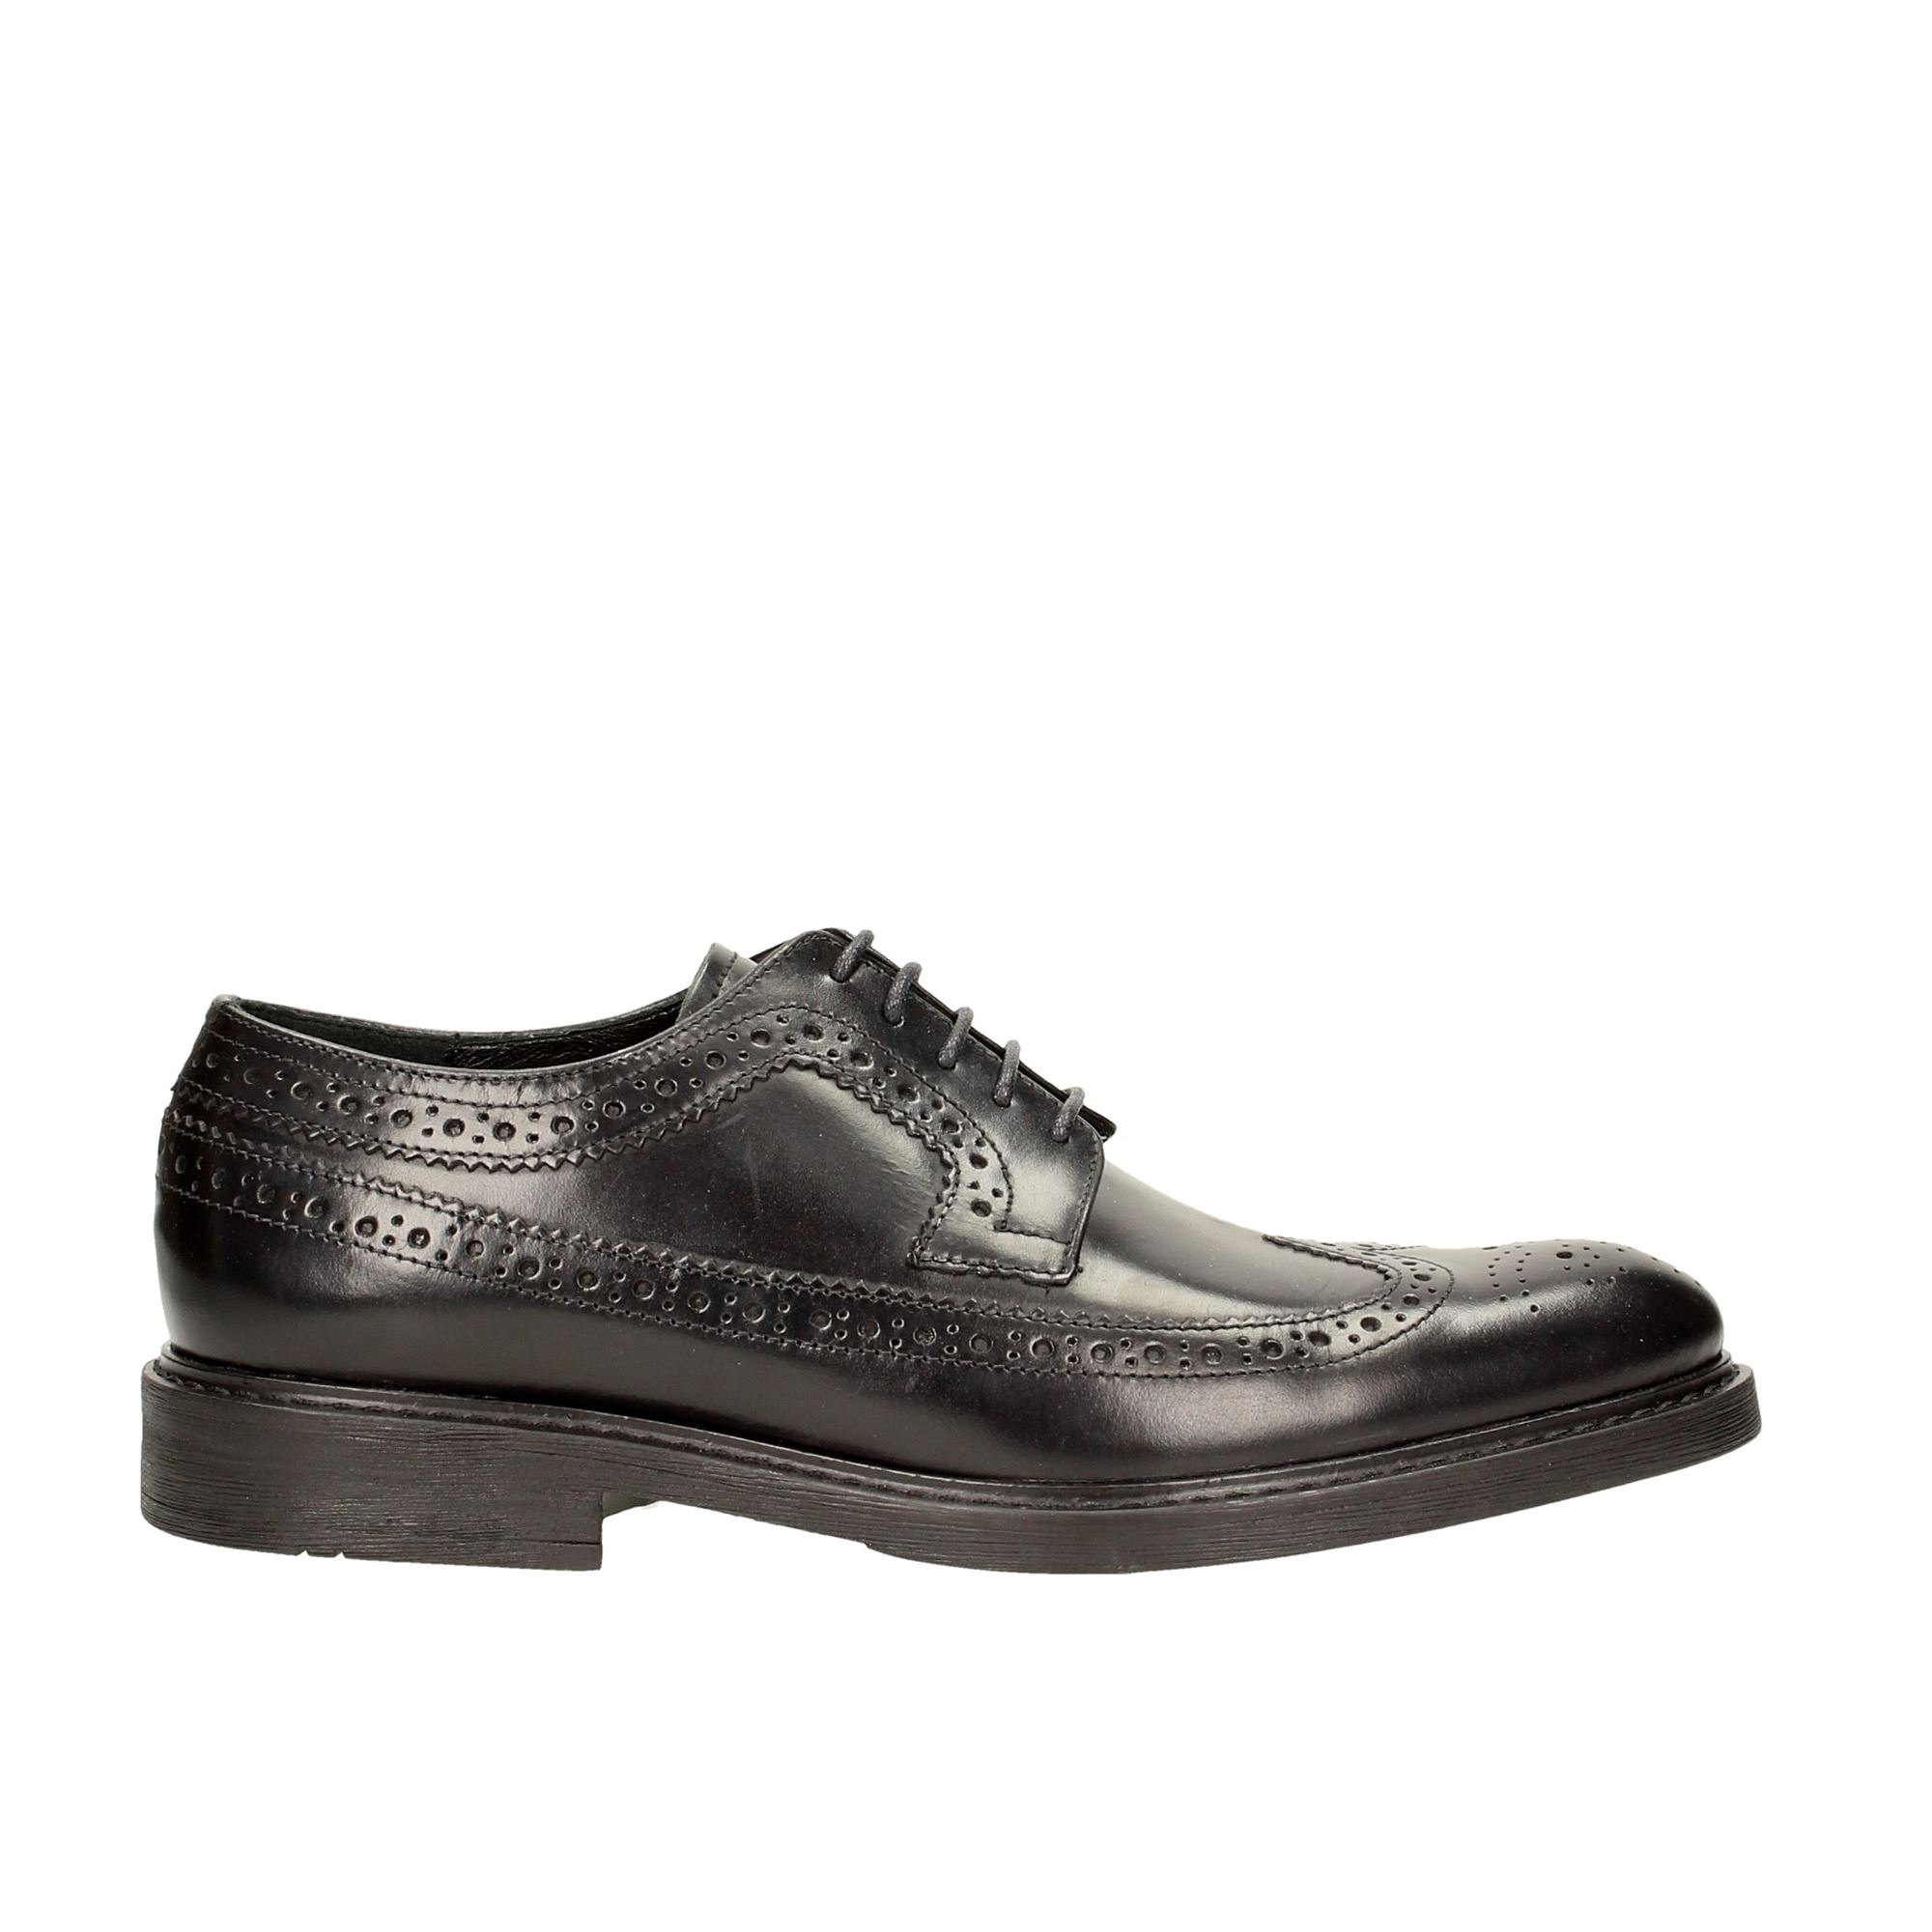 Tata Italia Shoes Man Derby Black 8-05-25-C